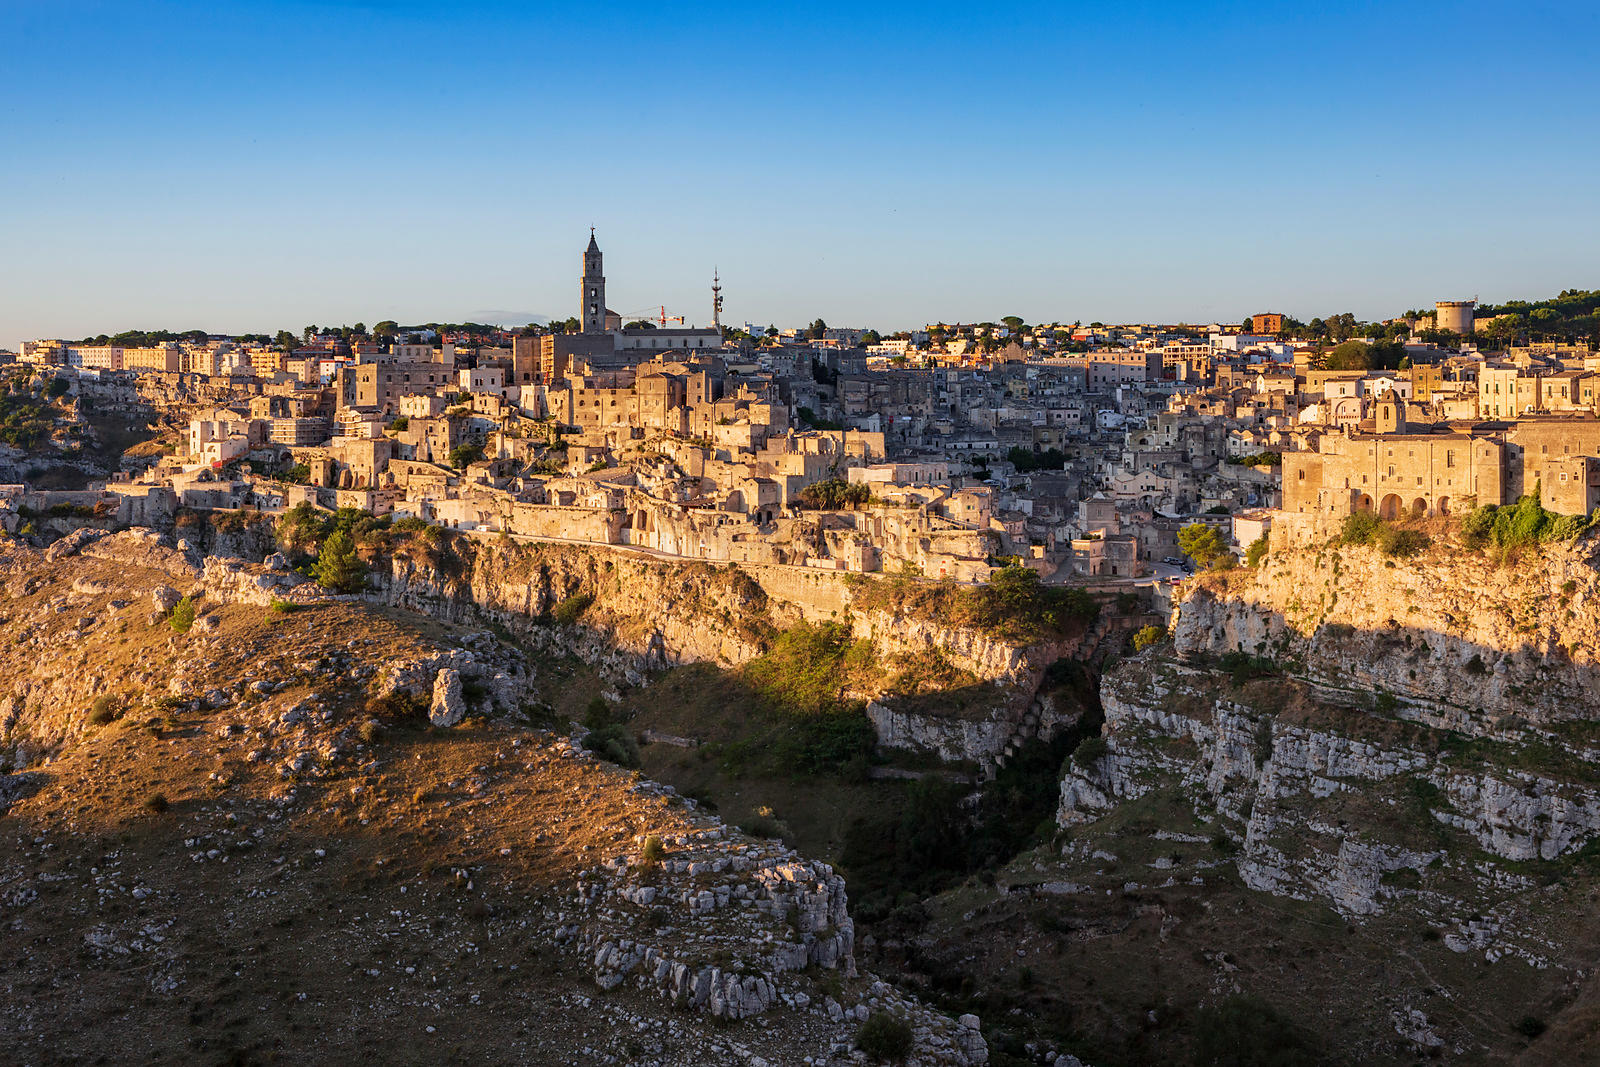 Skyline of Matera at Sunrise